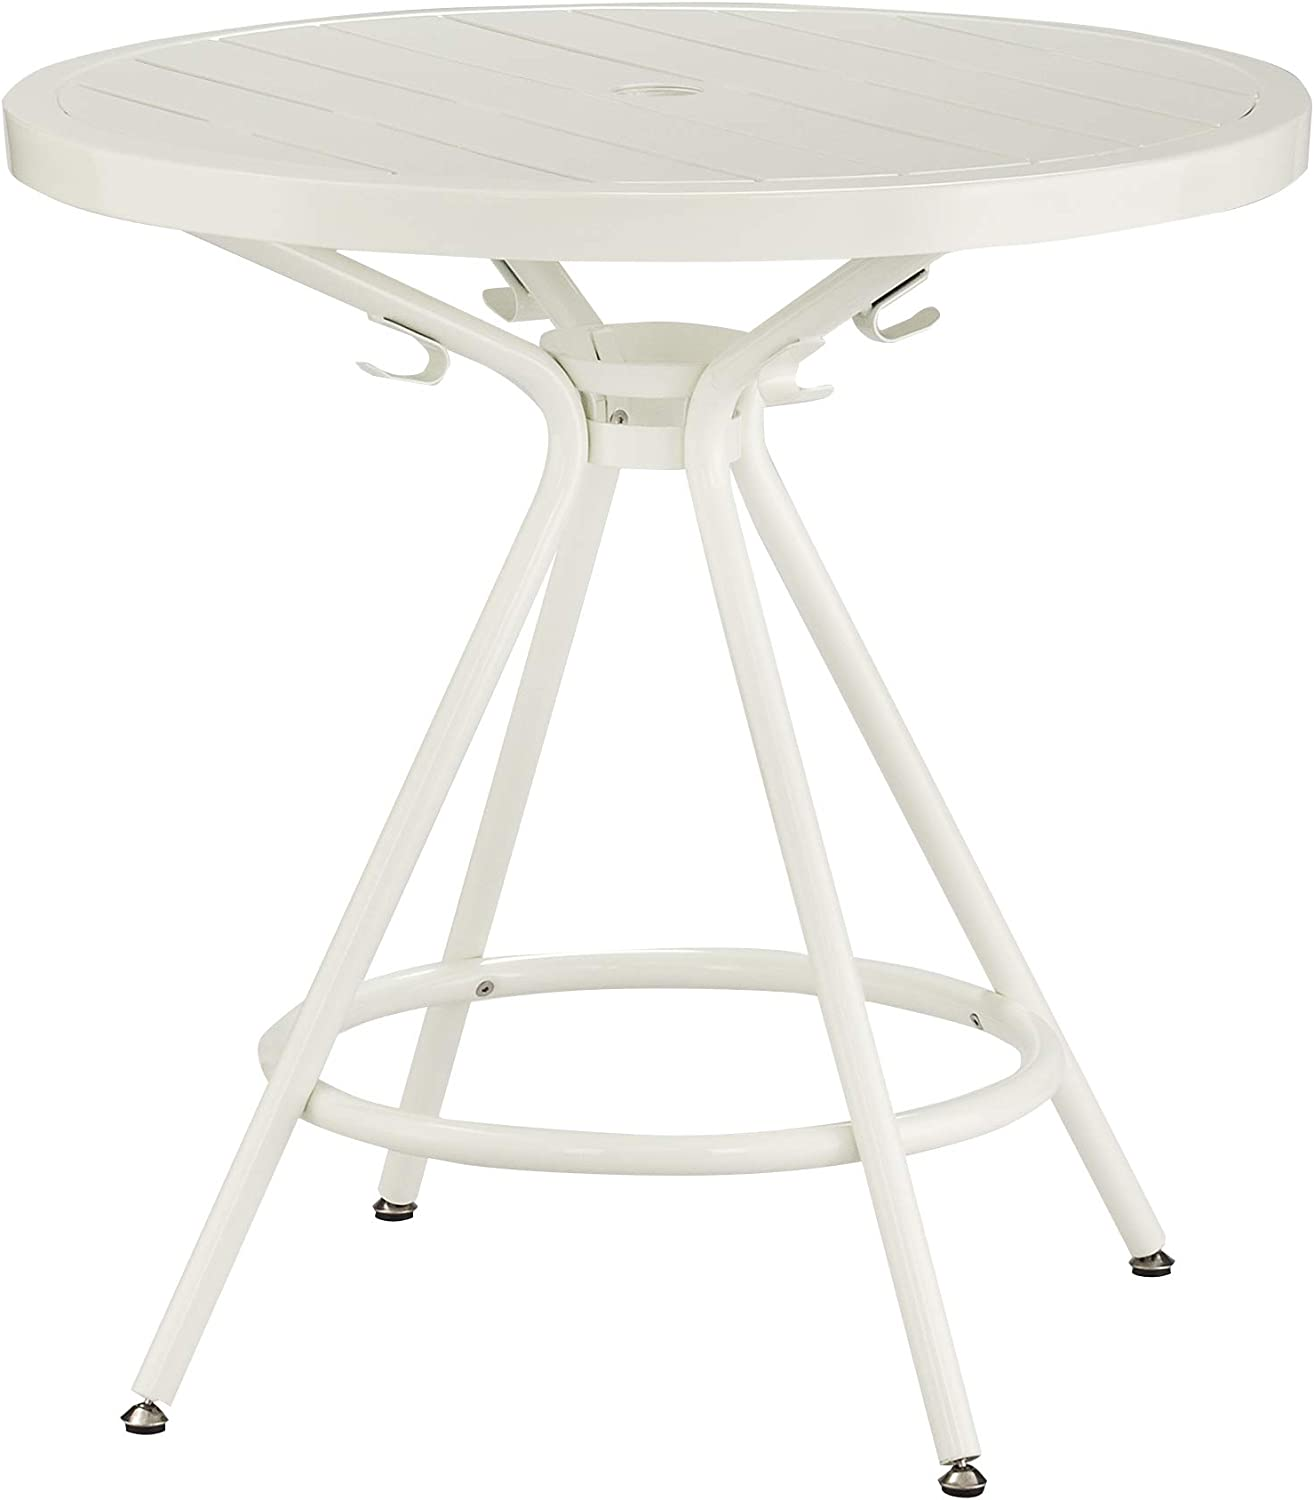 """Safco Products CoGo Steel Indoor/Outdoor Table, 30"""" Round, White"""